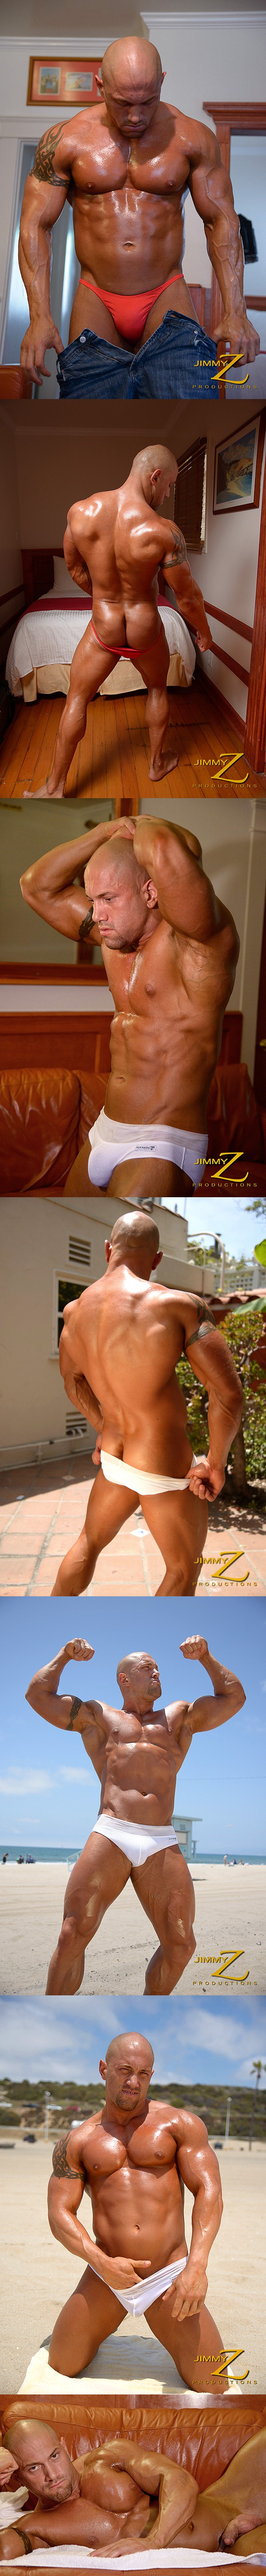 Gannicus flexes and poses under sunshine at Jimmyzproductions 02